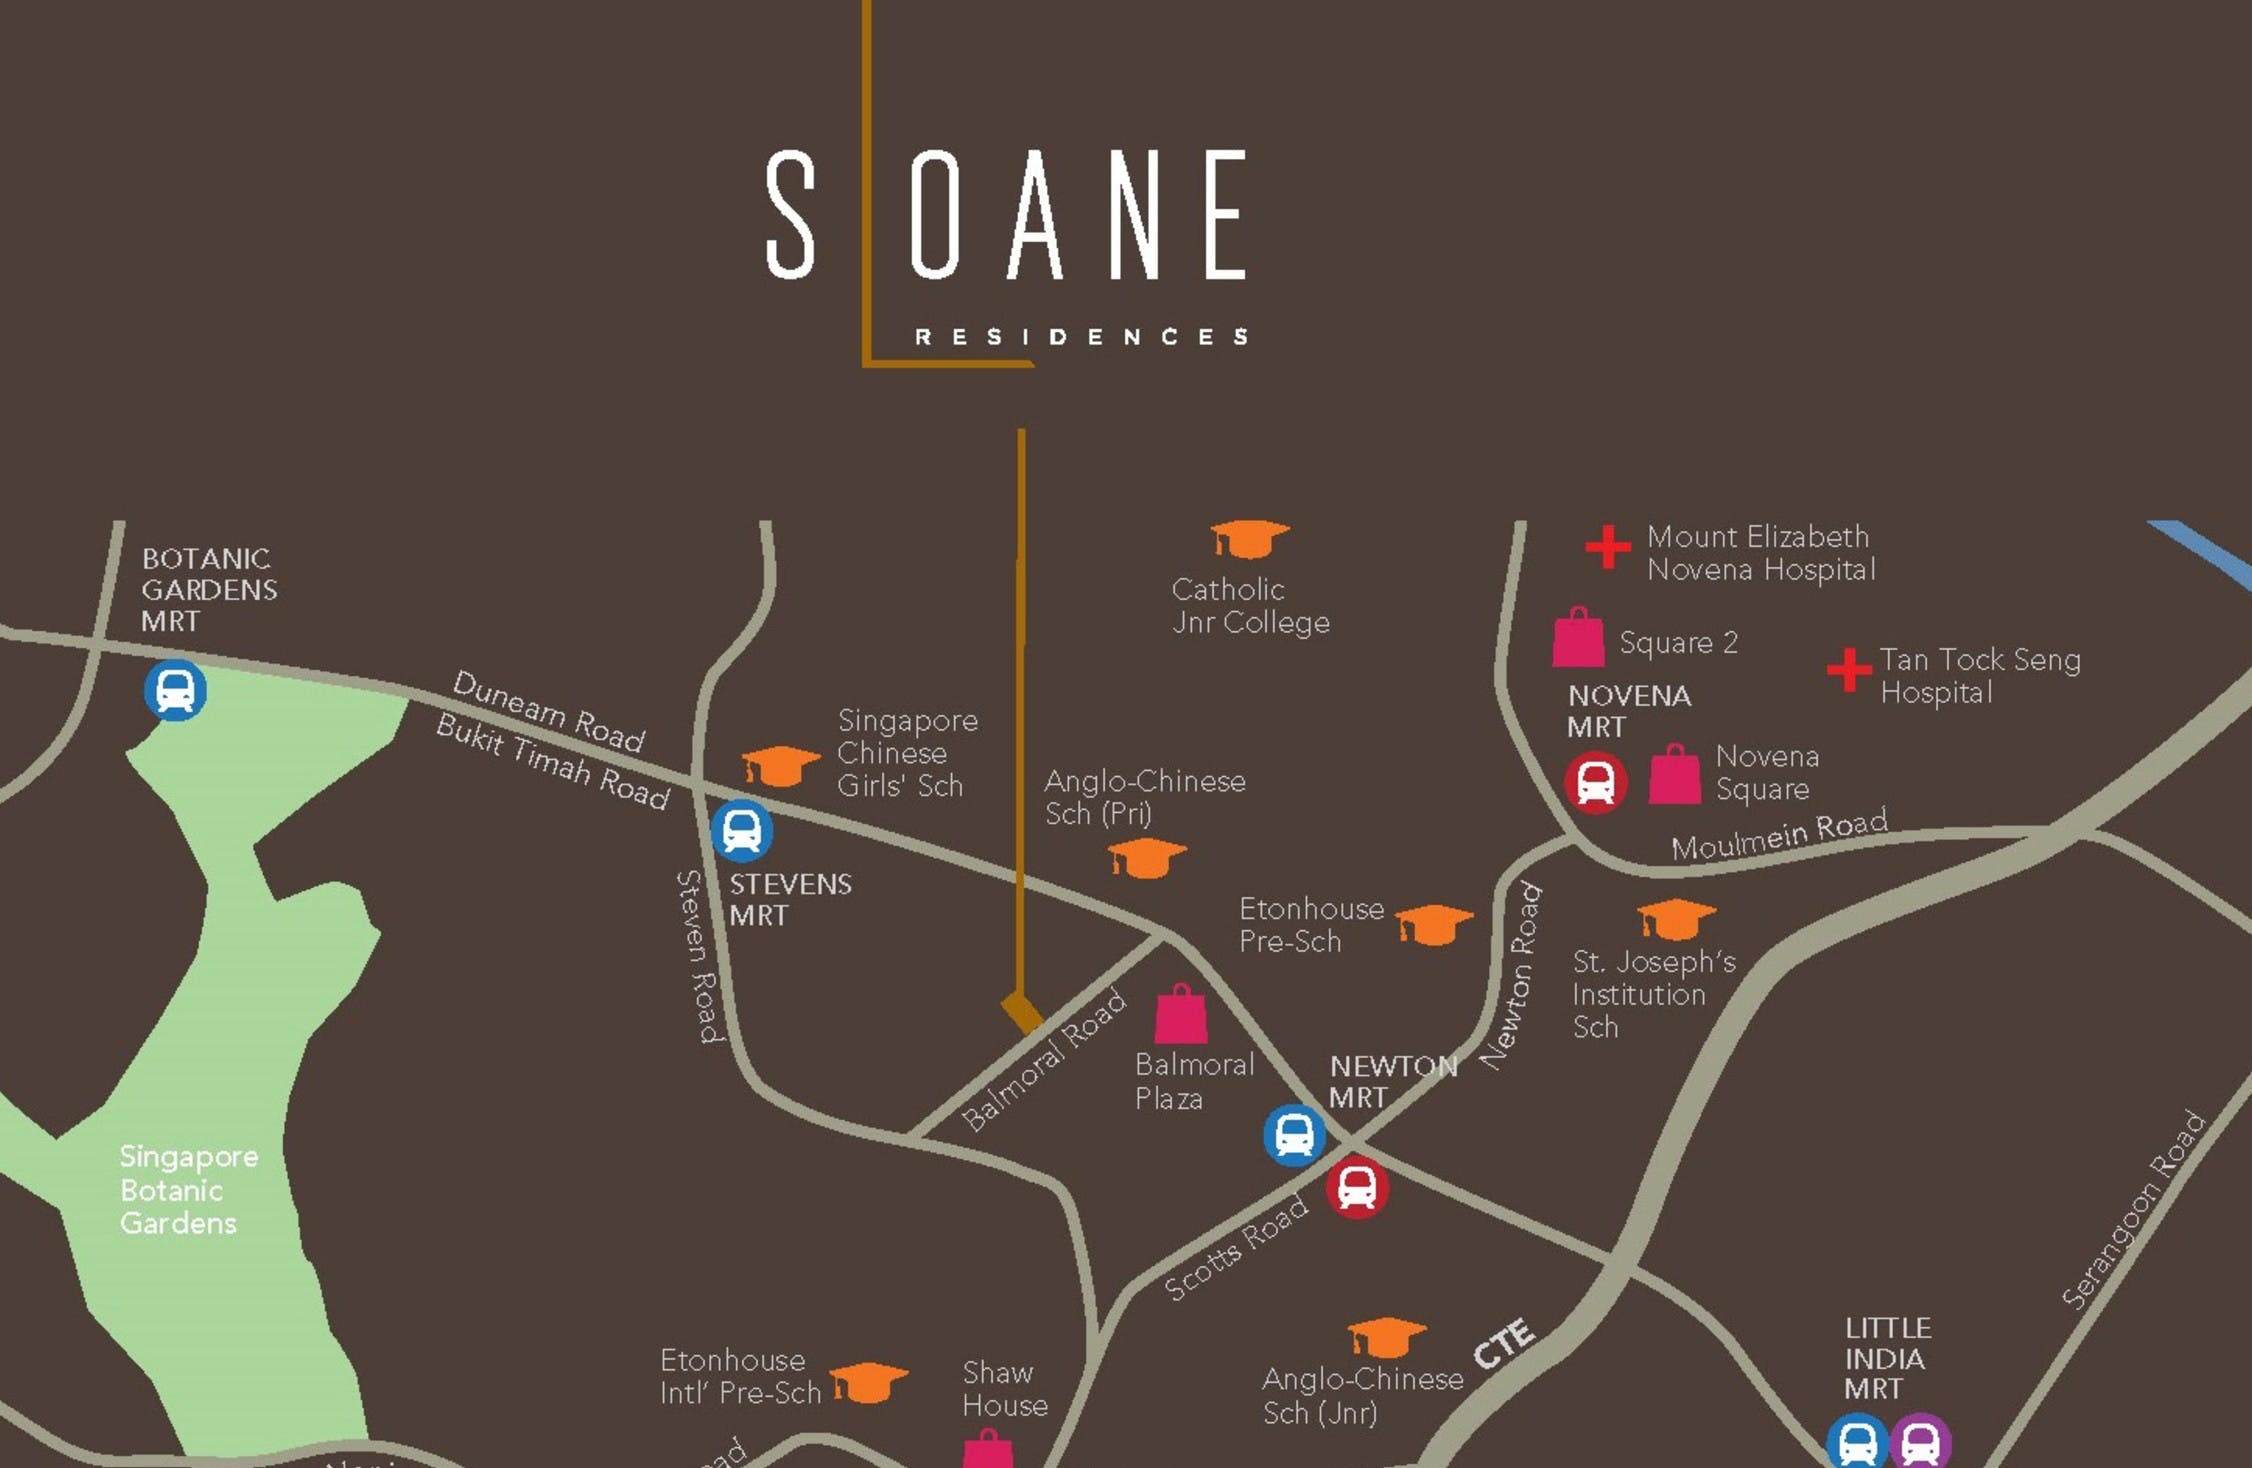 Map of the vicinity around Sloane Residences